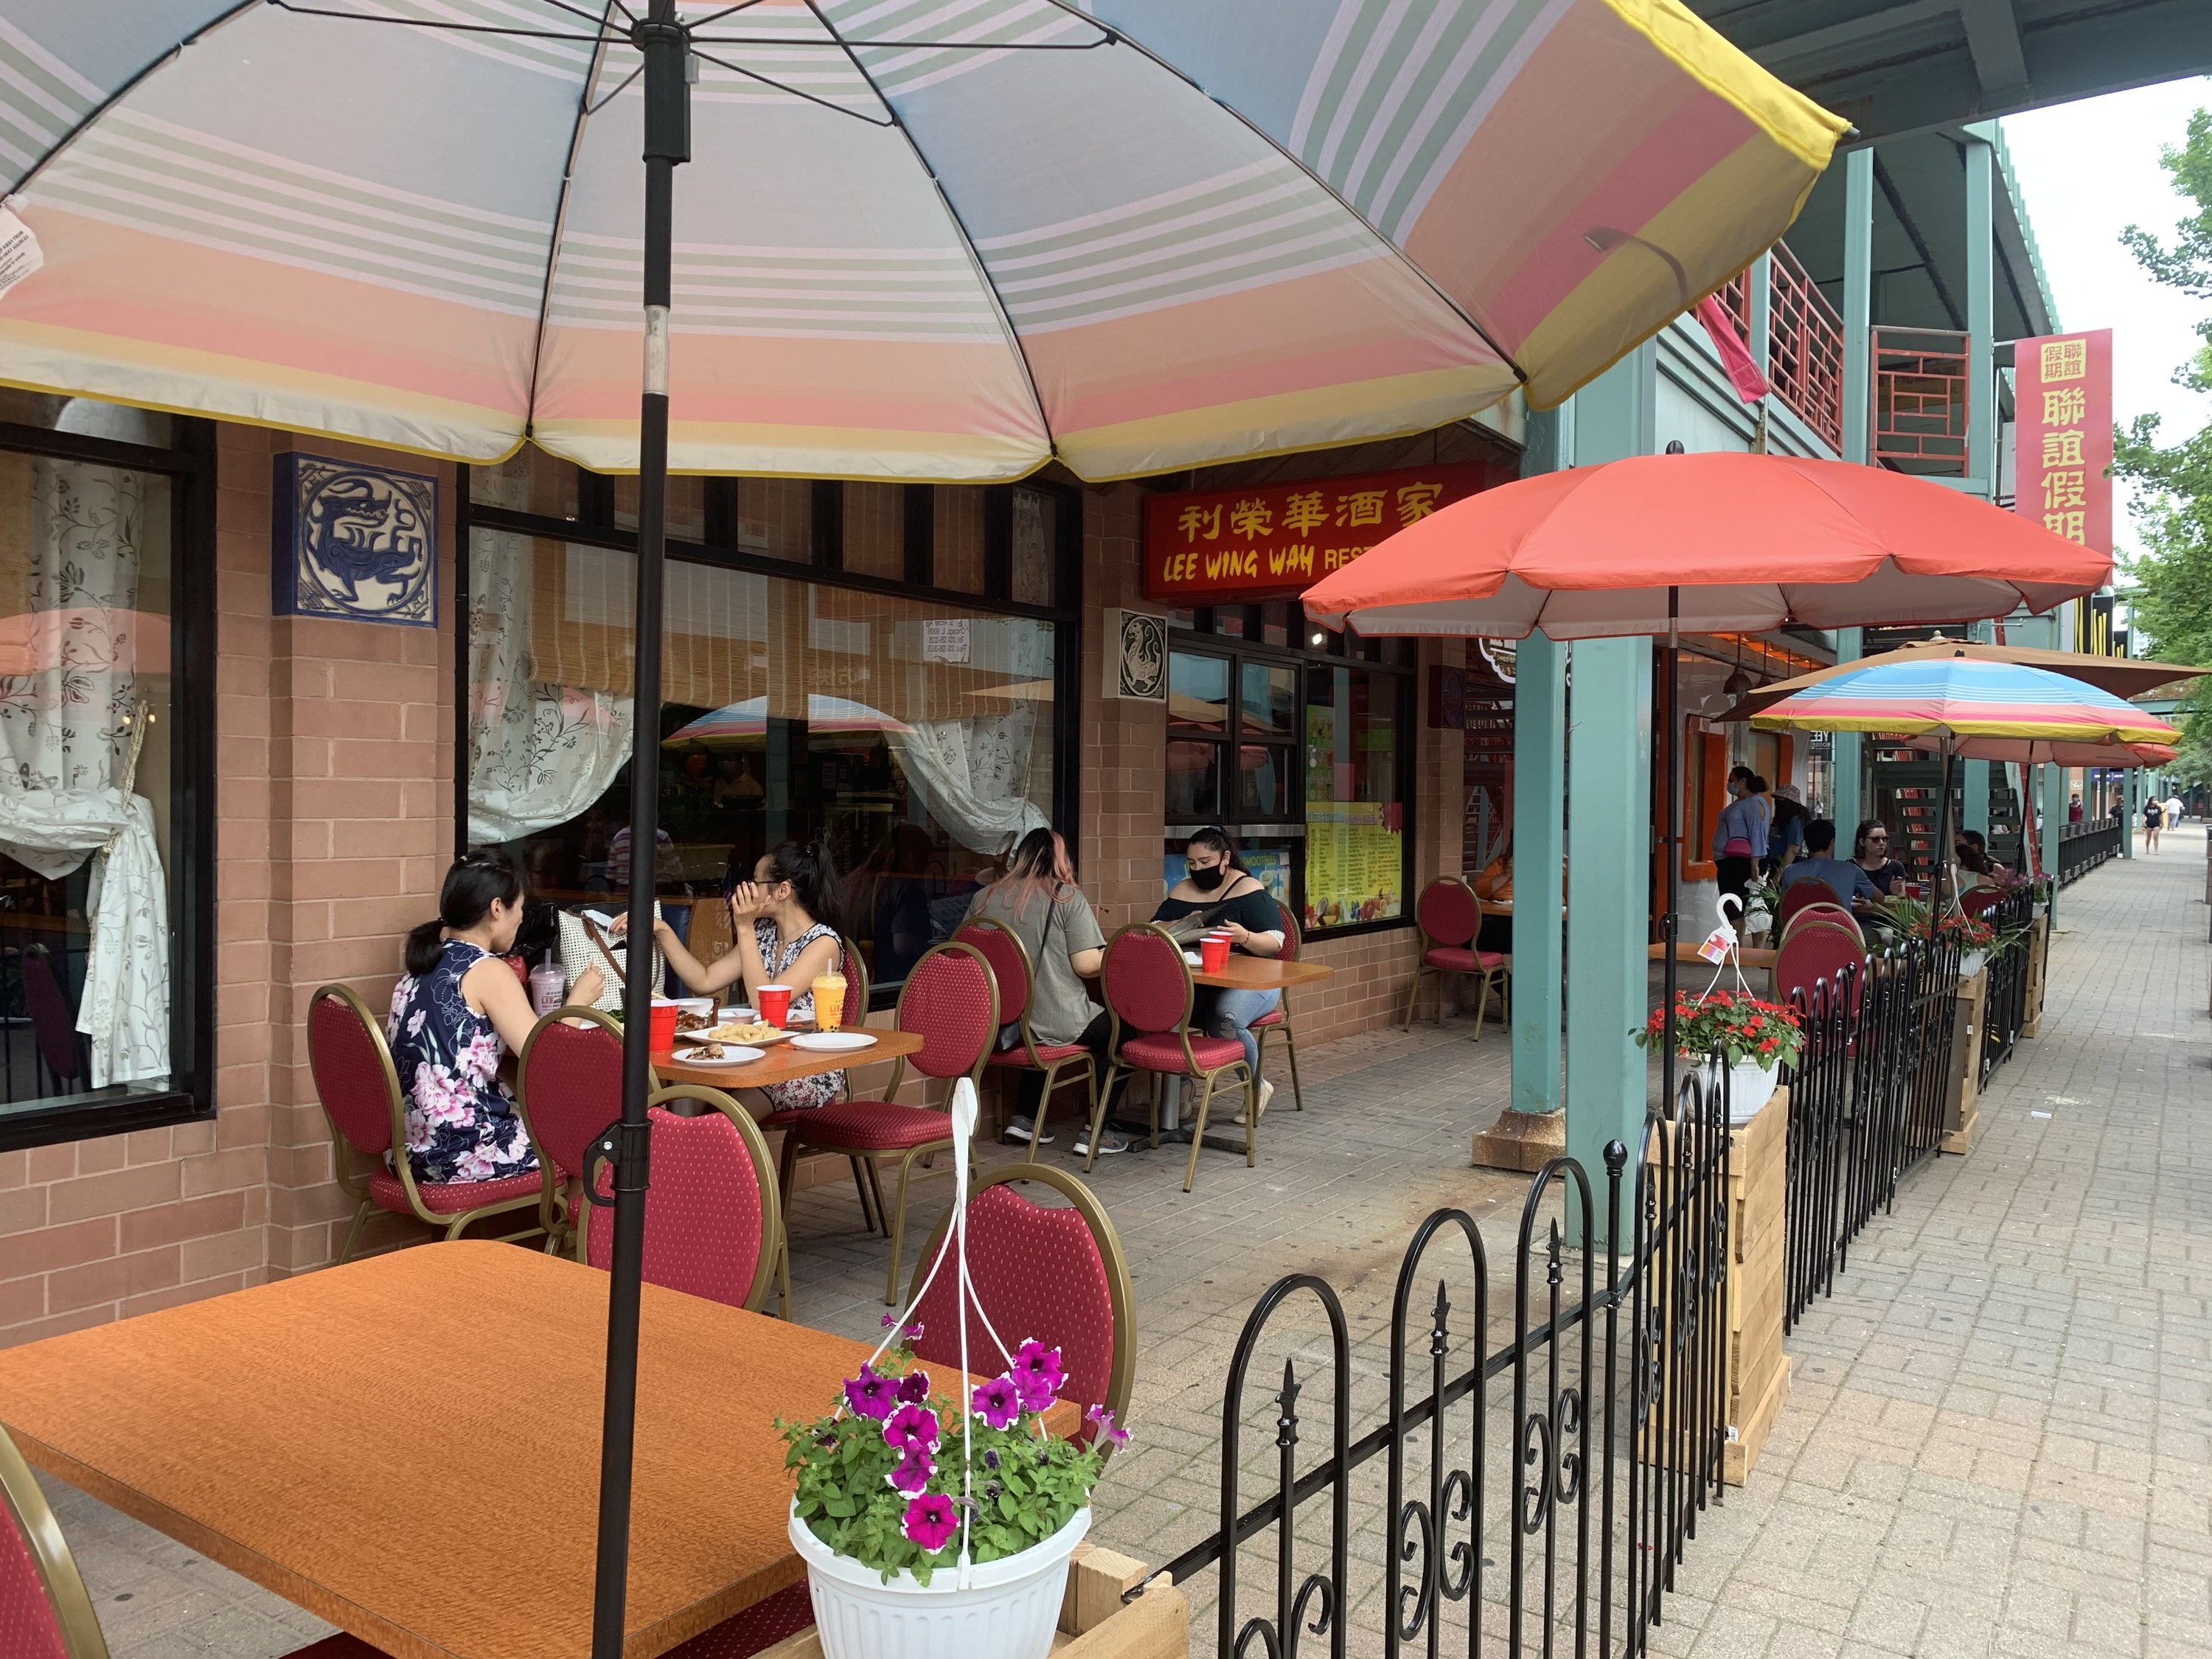 Chinatown Square, Chinatown outdoor dining, outdoor dining